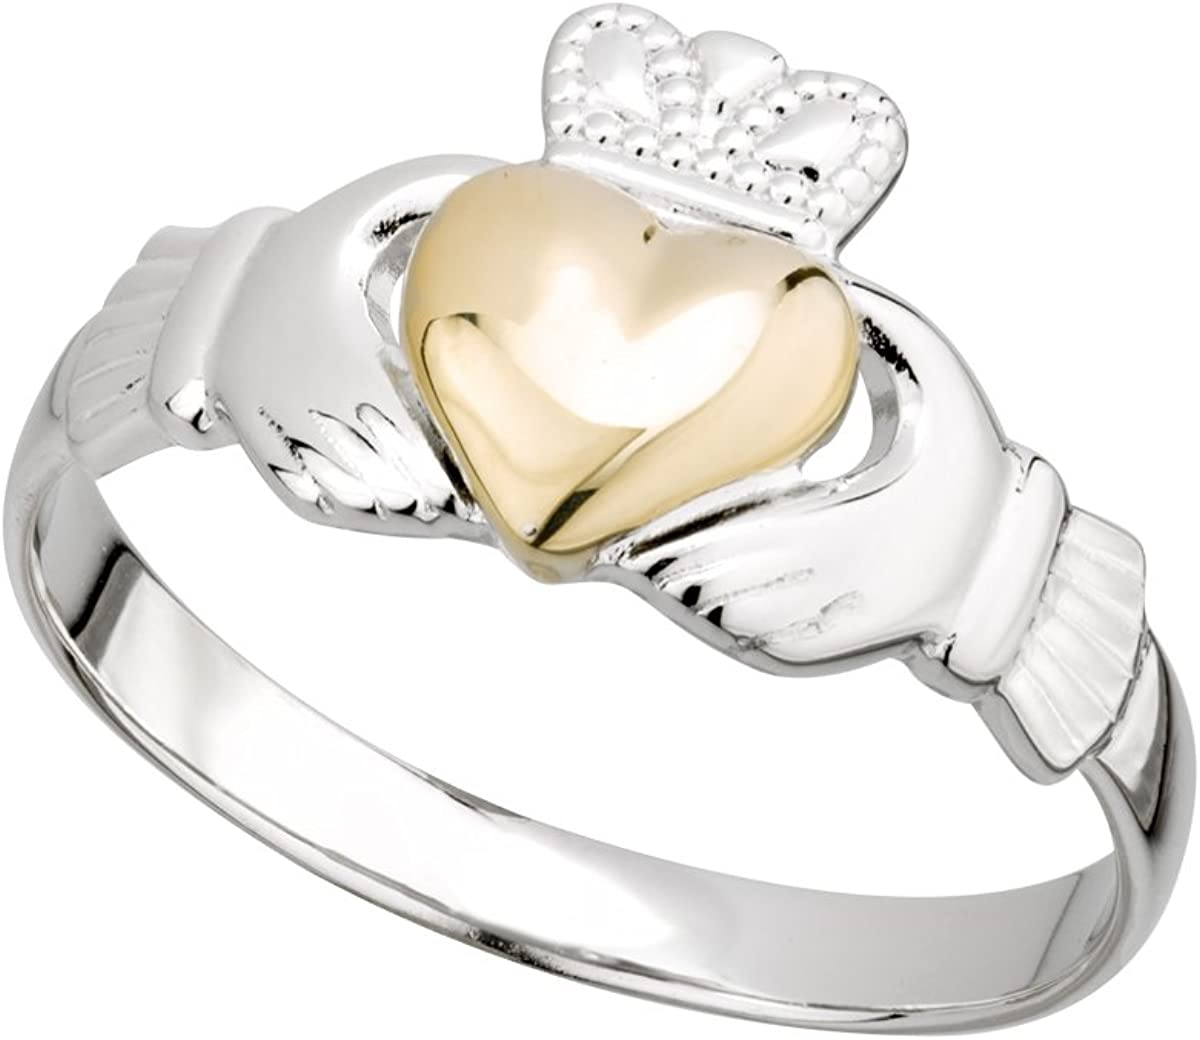 Irish Claddagh Sale SALE% OFF Ring Made in Ireland 10K Sterling Max 76% OFF and Silver Gold